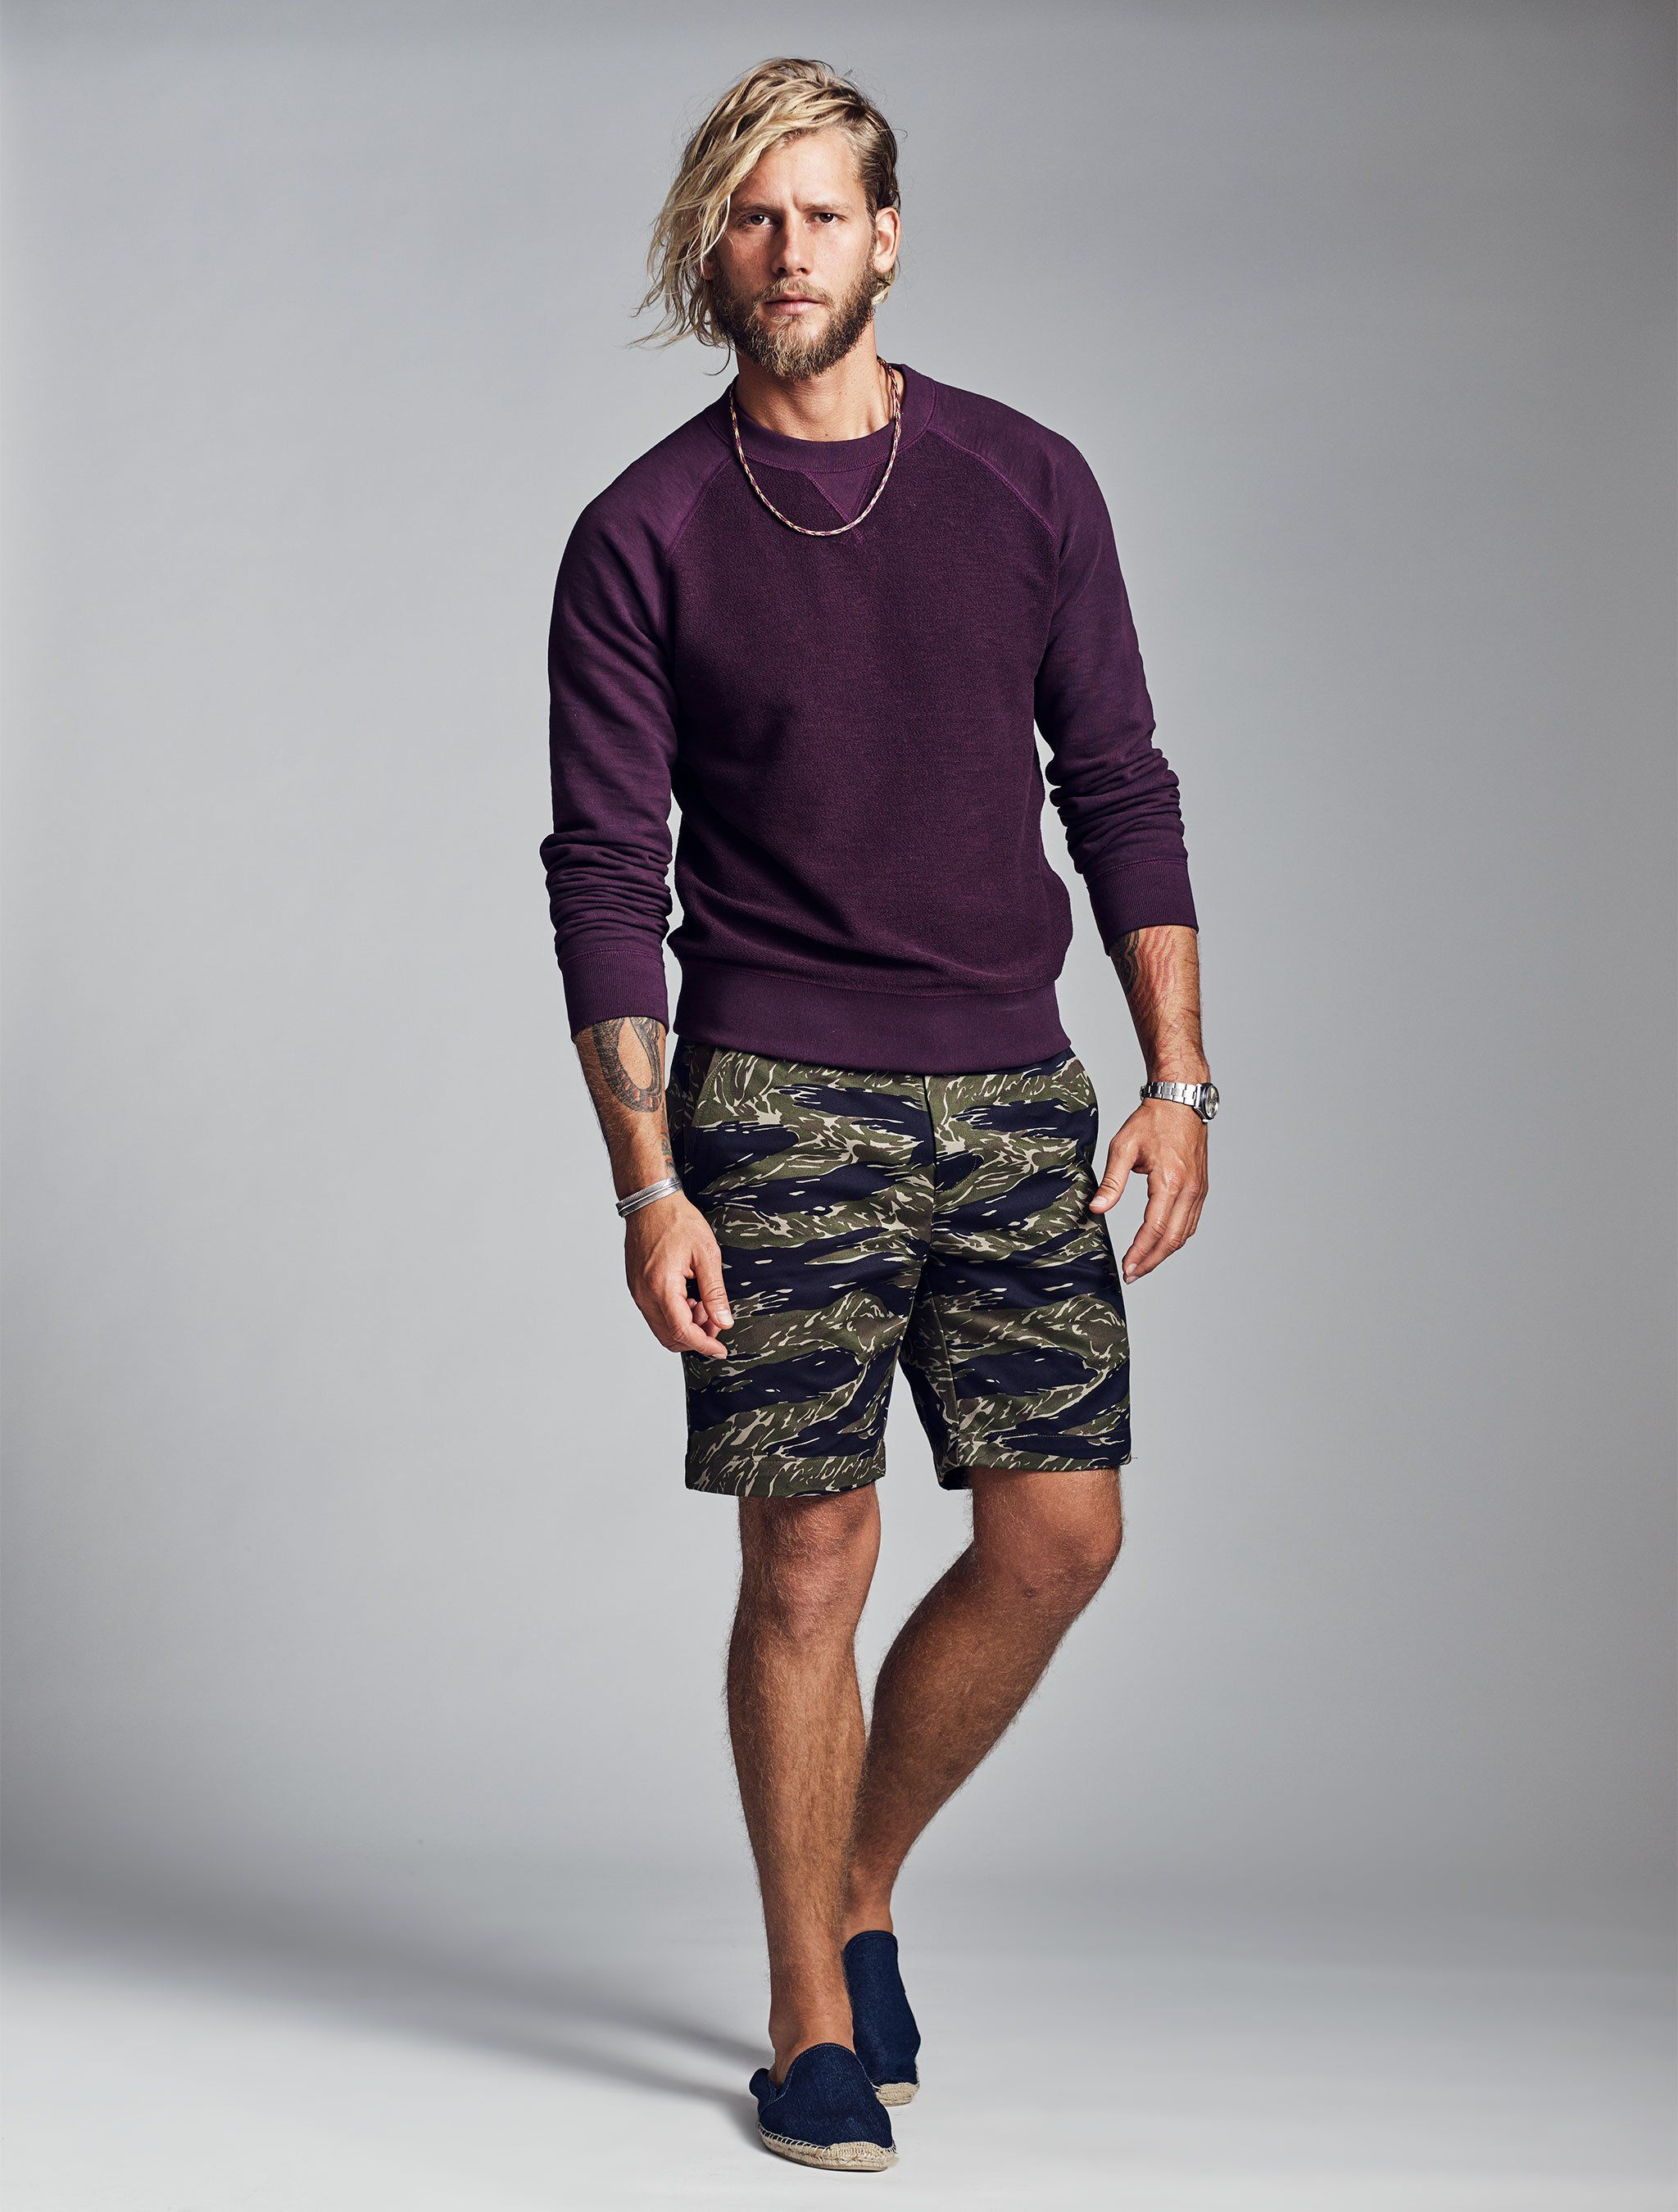 137a8488b The tiger camo pattern in this refined silhouette will have you running  through the jungle with ease. This elevated short features an 8